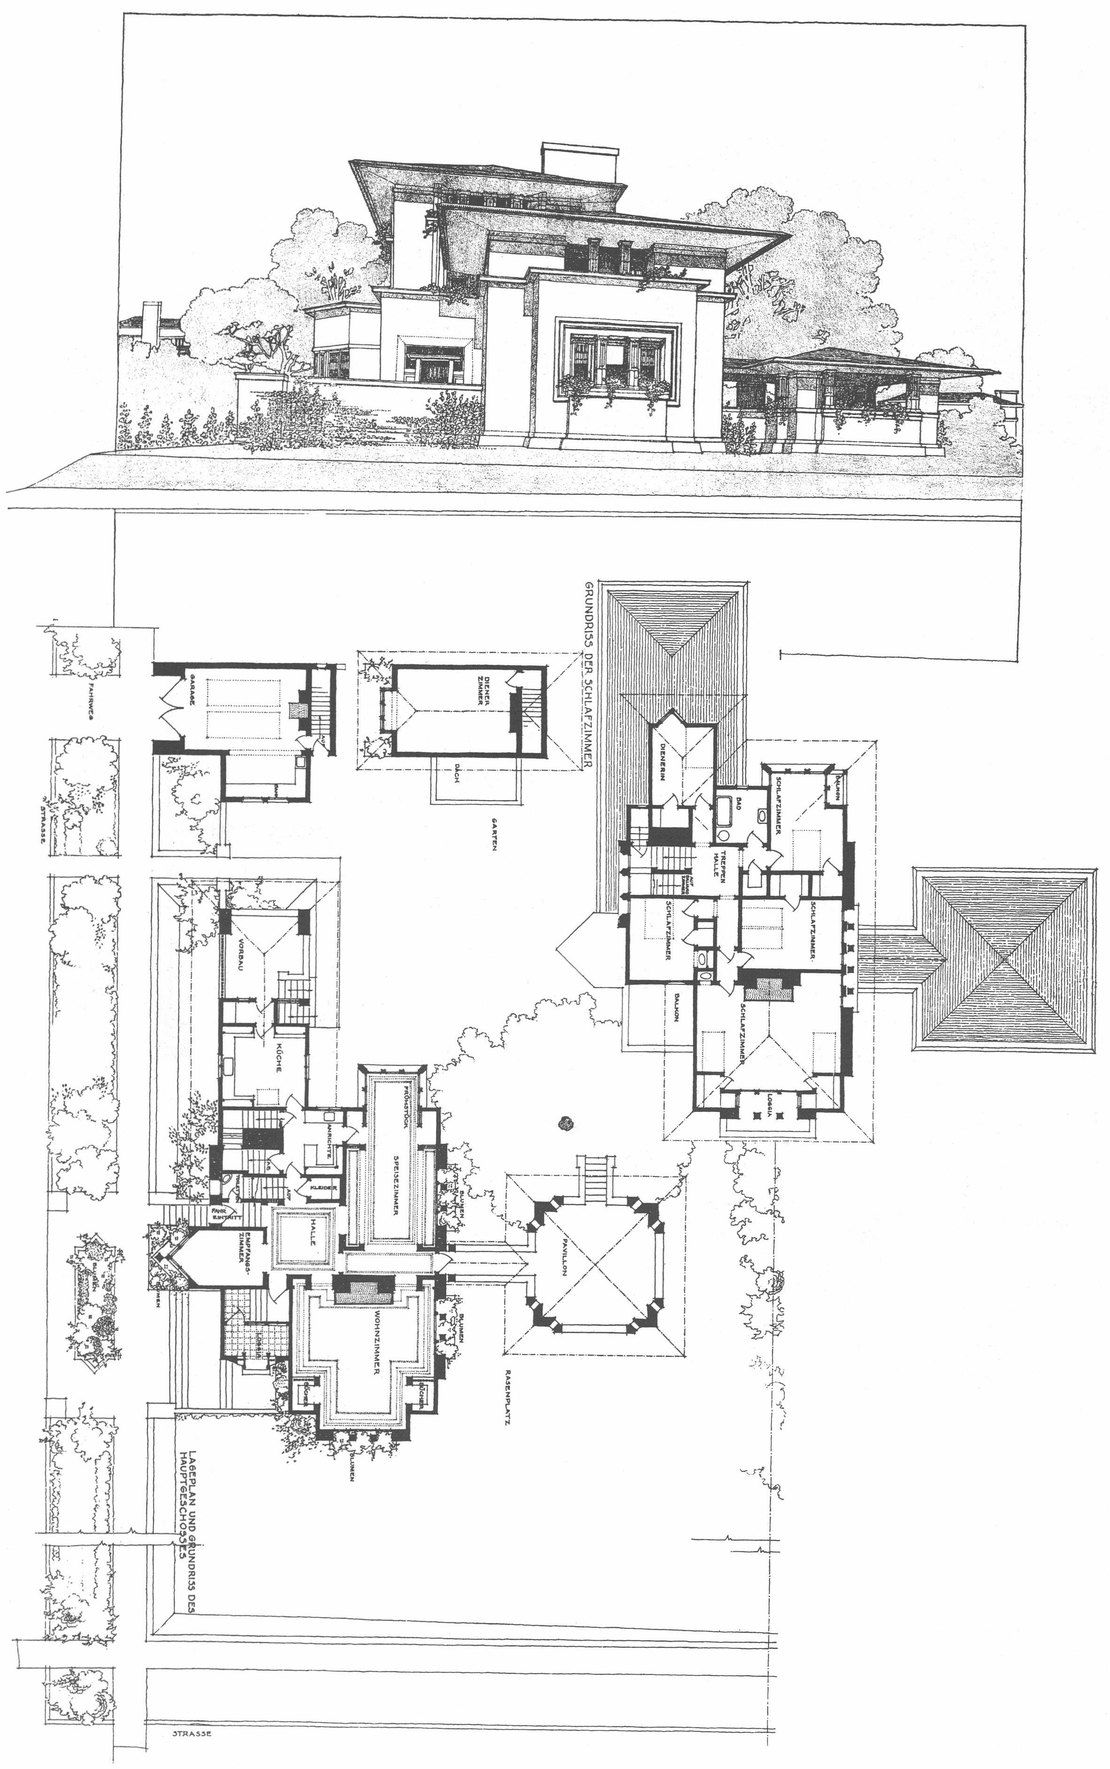 Falling water frank lloyd wright homes vintage house plans famous also best let   be shall we images on pinterest in rh